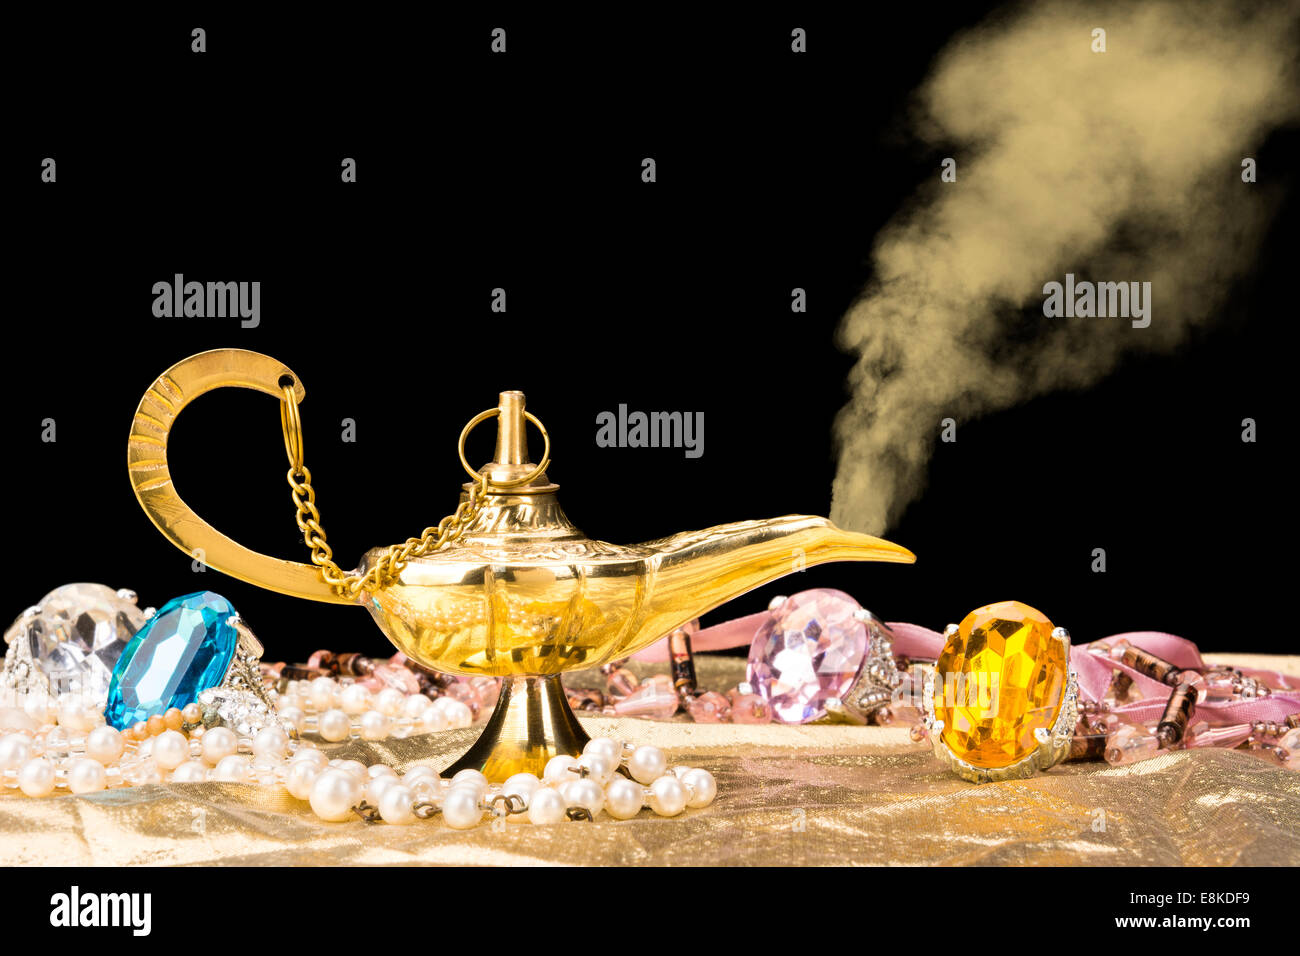 The formation of a magical deity from a gold, magic lamp surrounded by a wealth of jewelry and fantasy. - Stock Image